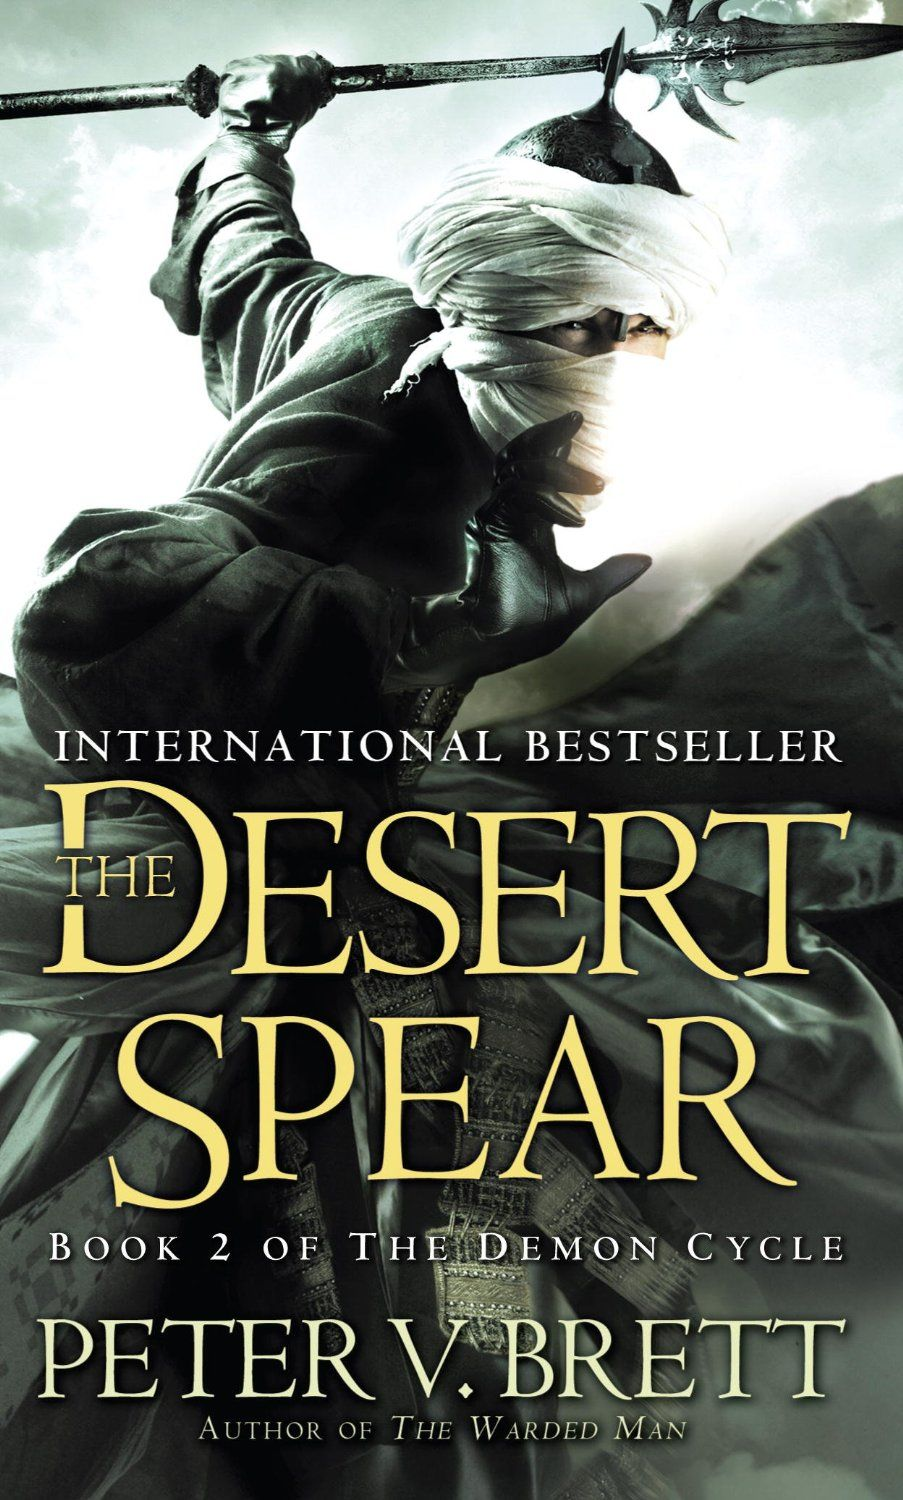 The Desert Spear By Peter V Brett  Book 2 In The Demon Cycle Series